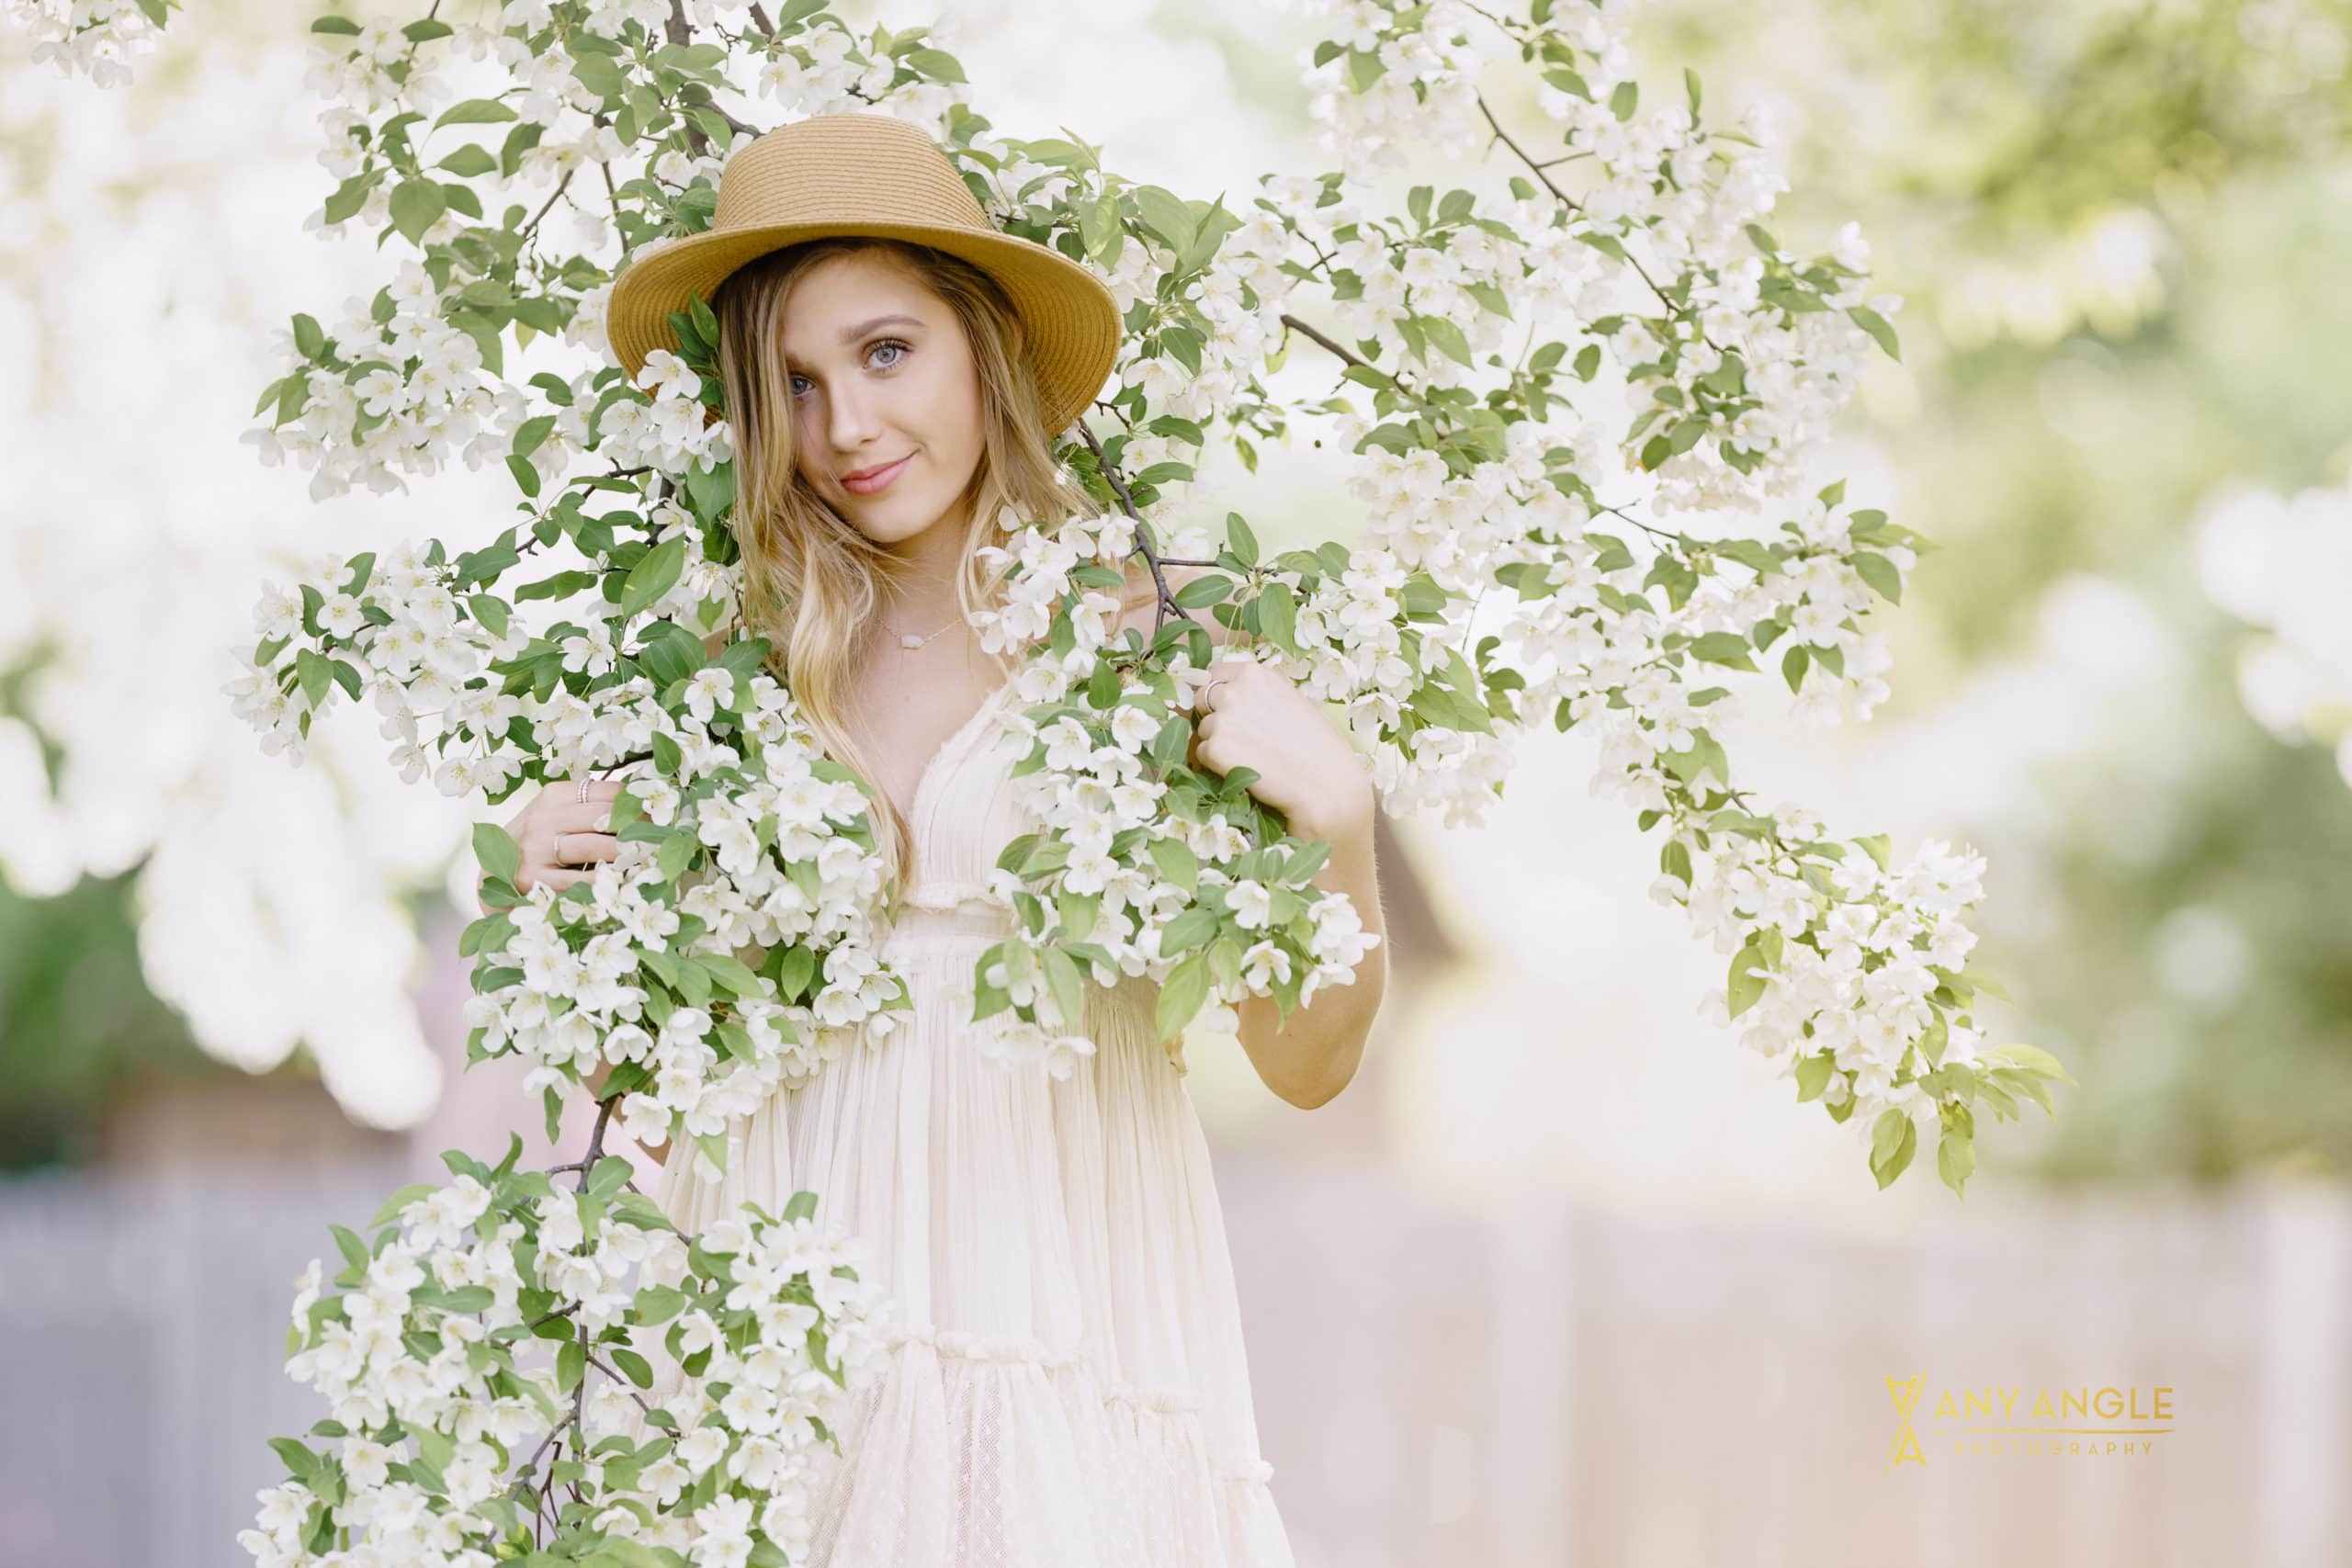 spring senior pictures with girl  in white dress standing underneath tree  covered with white blossoms